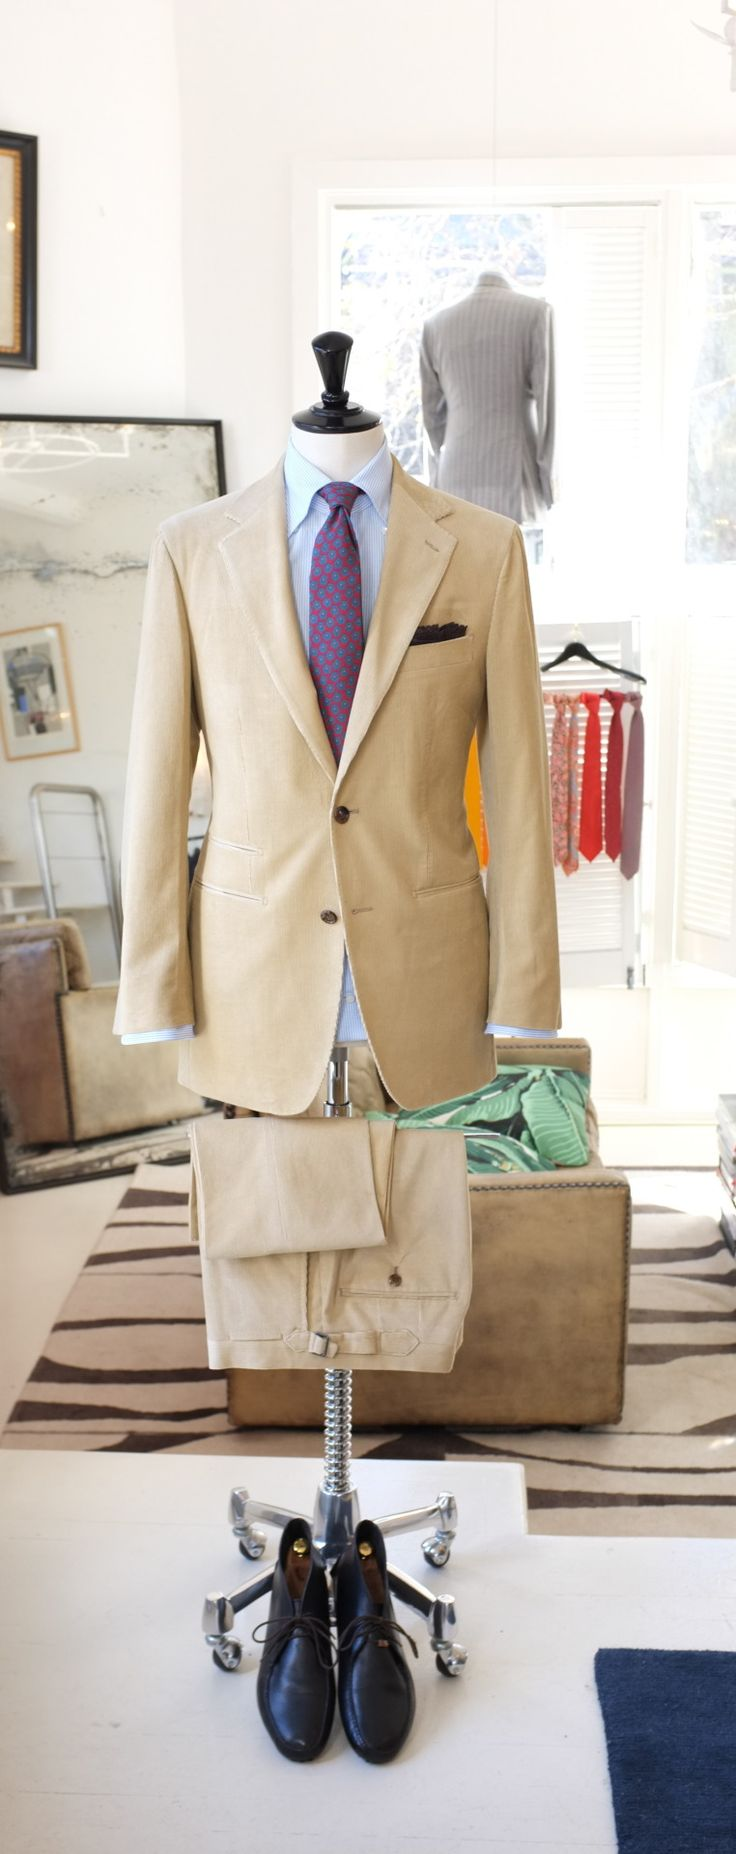 """patrickjohnsontailors: """"PJ Sydney Suit : Cotton/ Cashmere Cord from Loro Piana Shirt : PJ 'off the rack' 170's cotton linen blend from DJ Anderson - Button down collar with roll Tie : Drake's for..."""